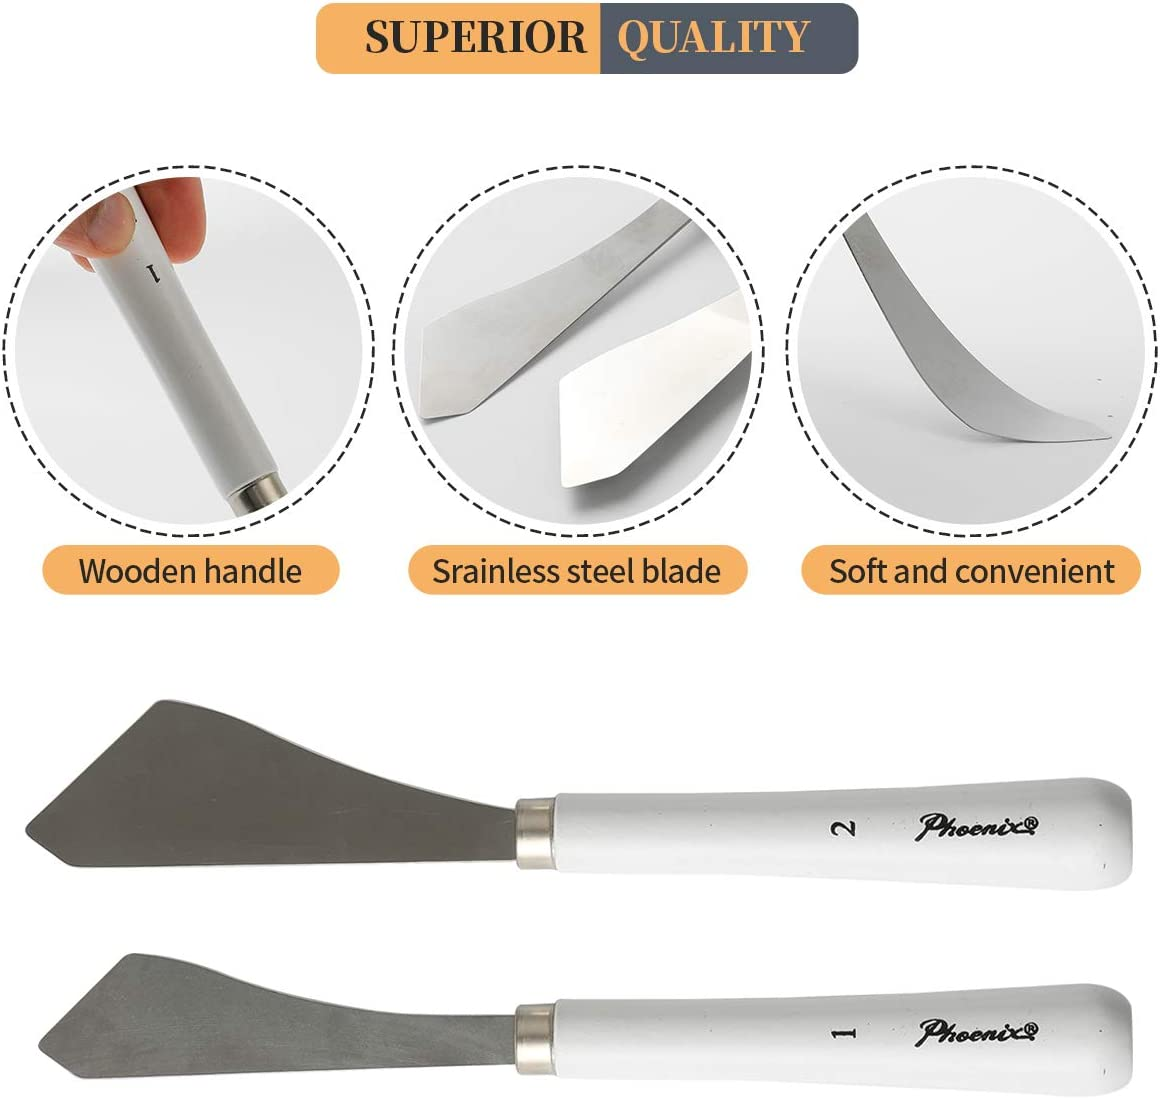 2pcs Painting Knife - Two Palette Knives - Thin and Flexible Art Tools for Oil Painting, Acrylic Mixing, Etc.